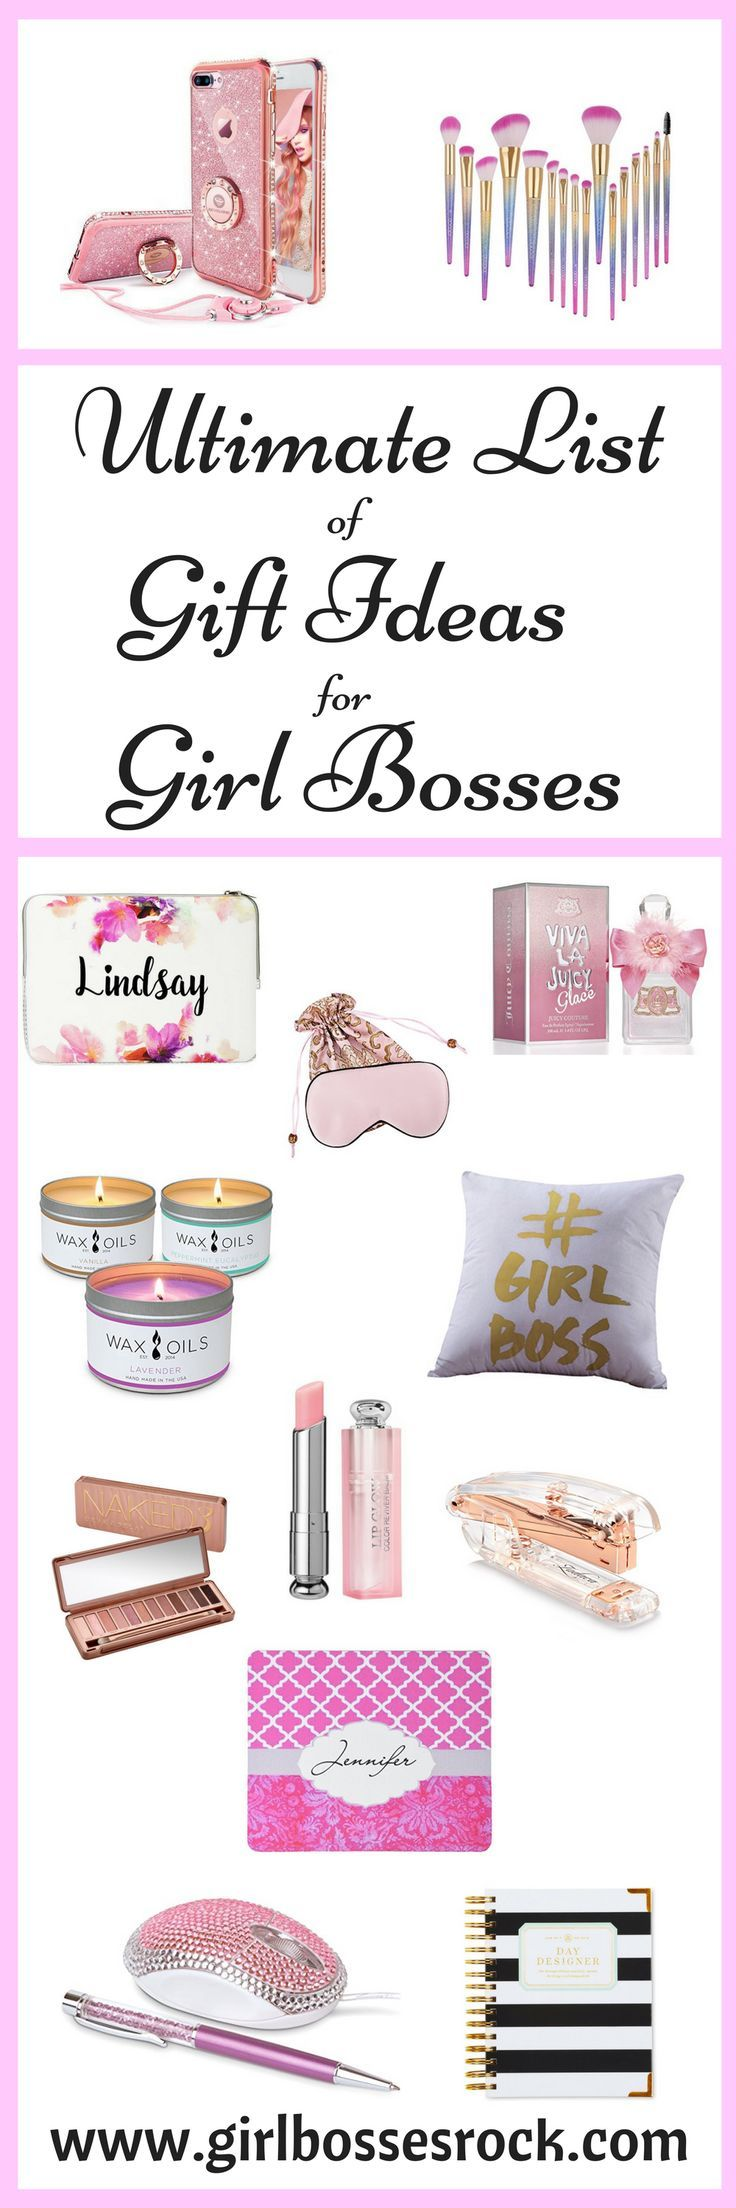 Ultimate List Girl Boss Gifts! The beauty gifts for Girl Bosses will make your gift shopping a piece of cake this year! Every Girl Boss prides herself on looking great and these gift ideas will surely be a hit!